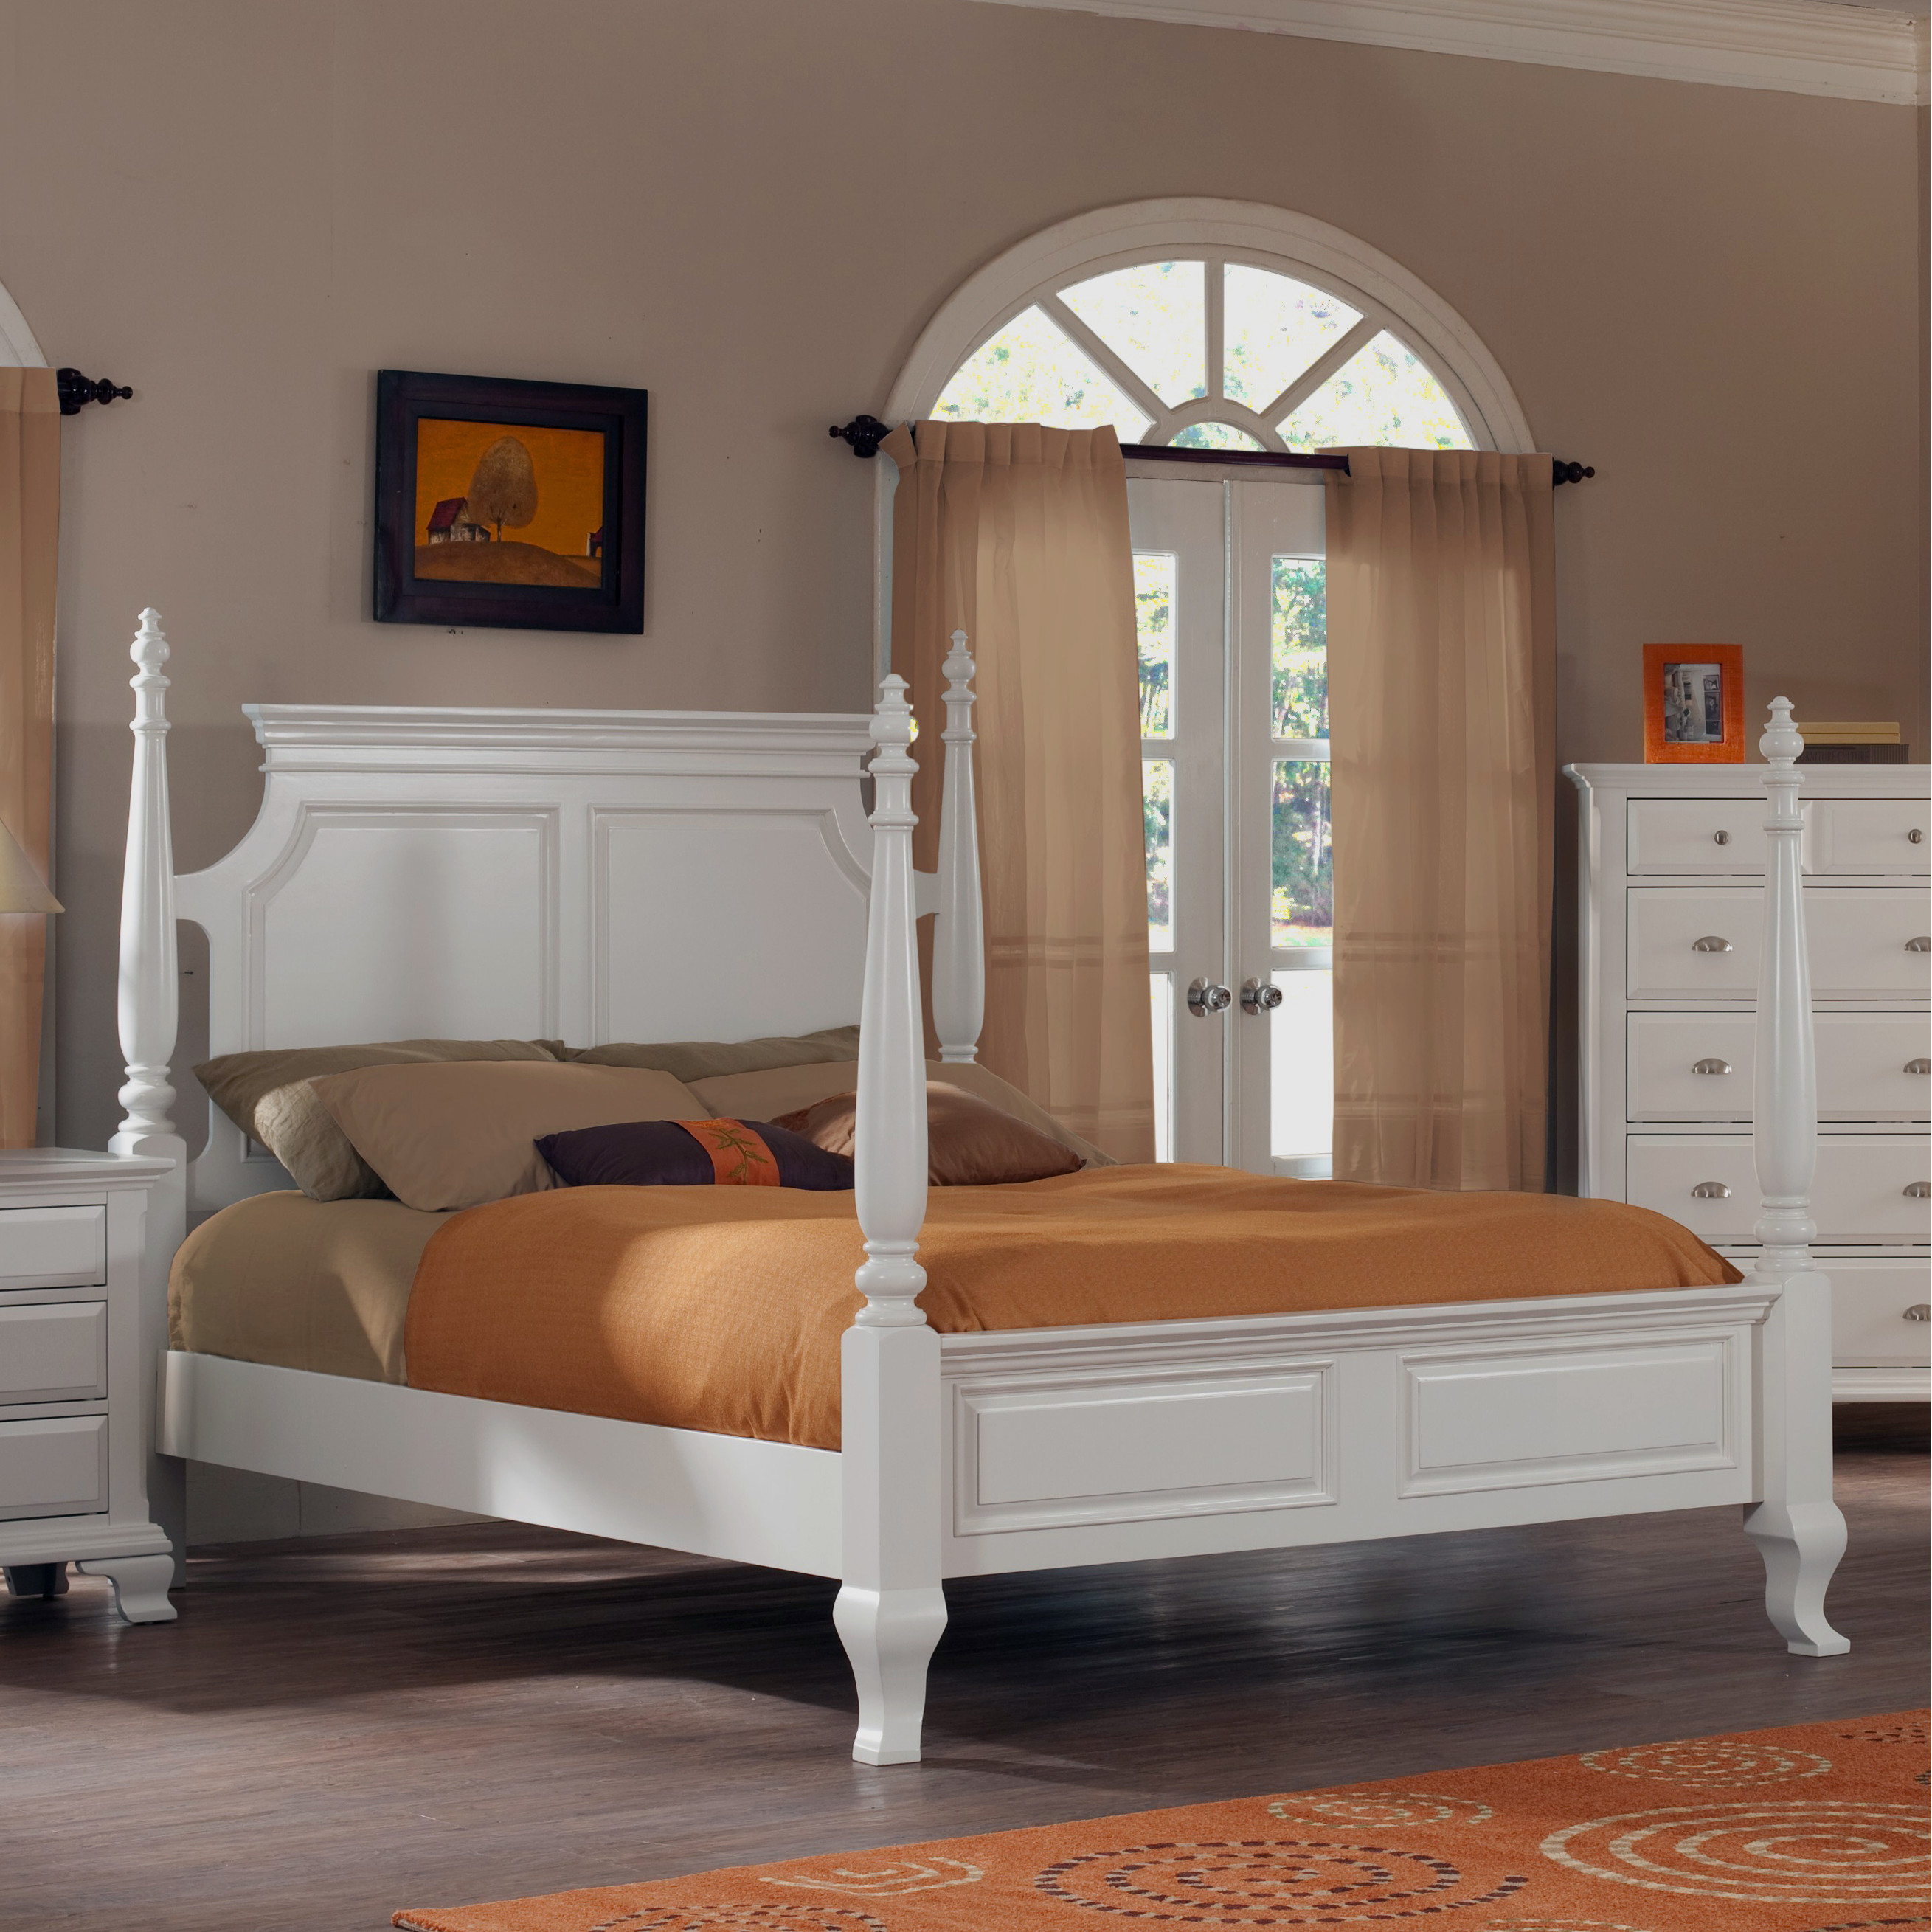 b012pq Roundhill Furniture Laveno Poster Bed